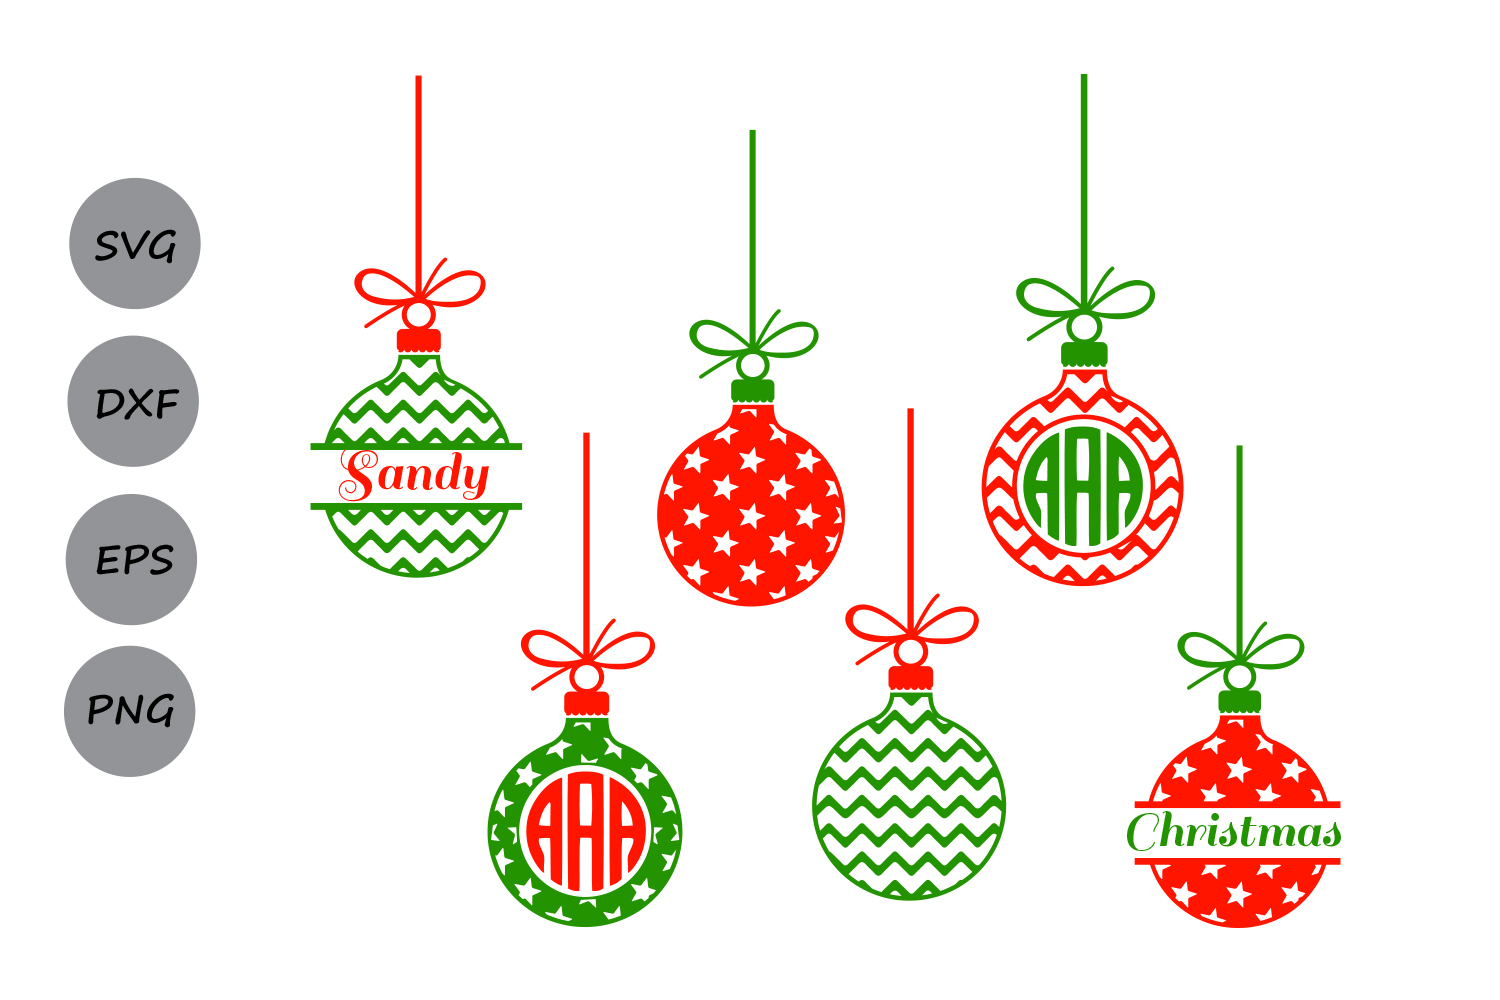 Ornaments clipart svg. Christmas orna design bundles